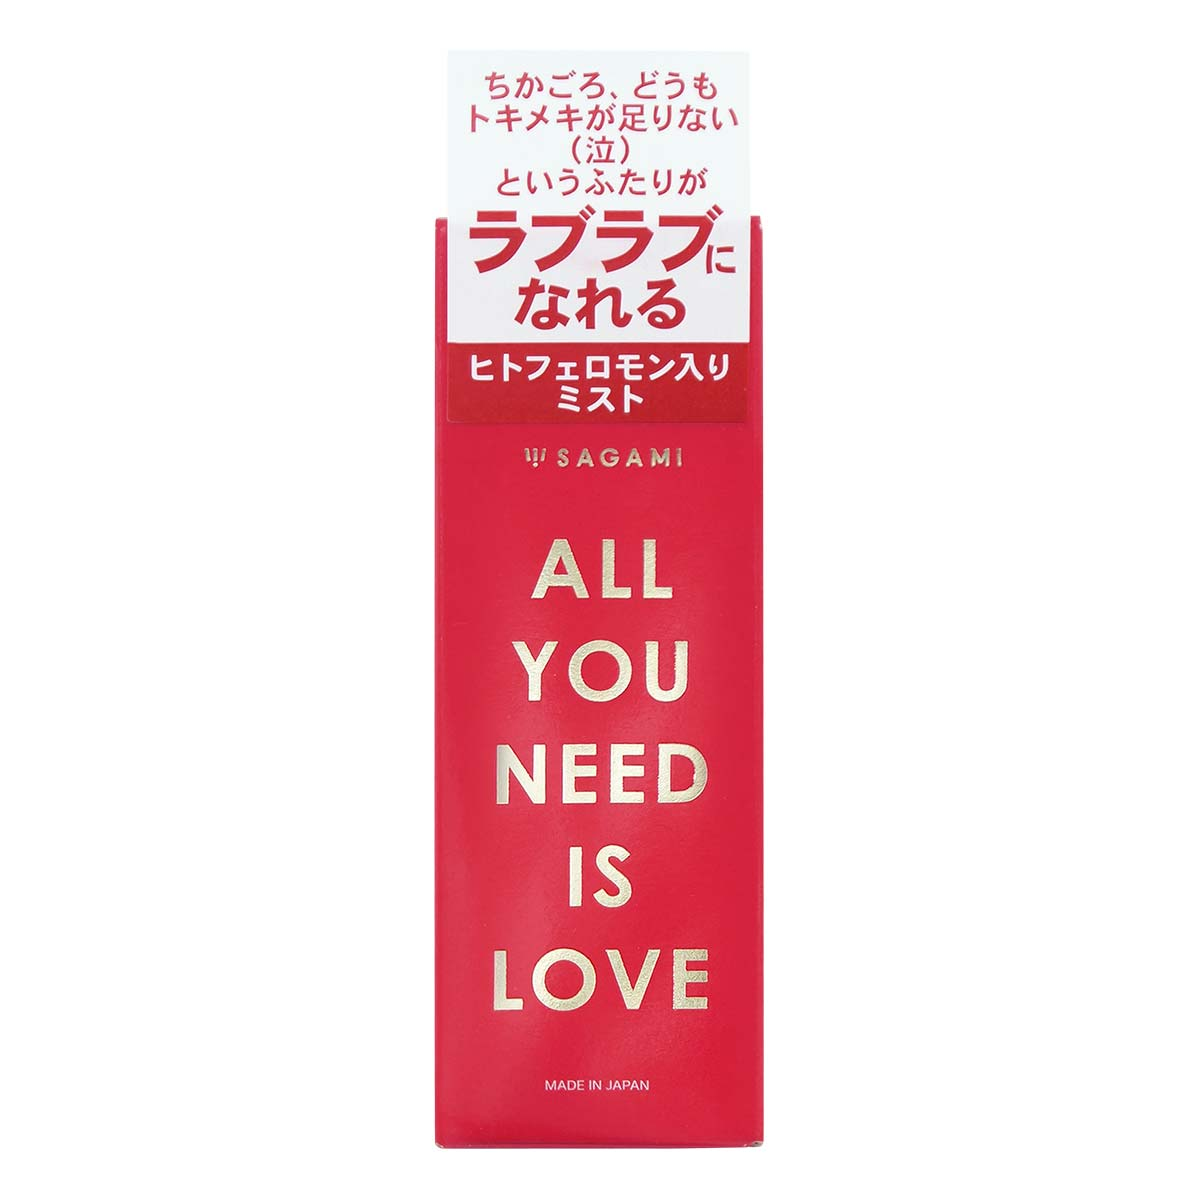 Sagami ALL YOU NEED IS LOVE 30ml pheromone spray (Expiry date: 2020.05)